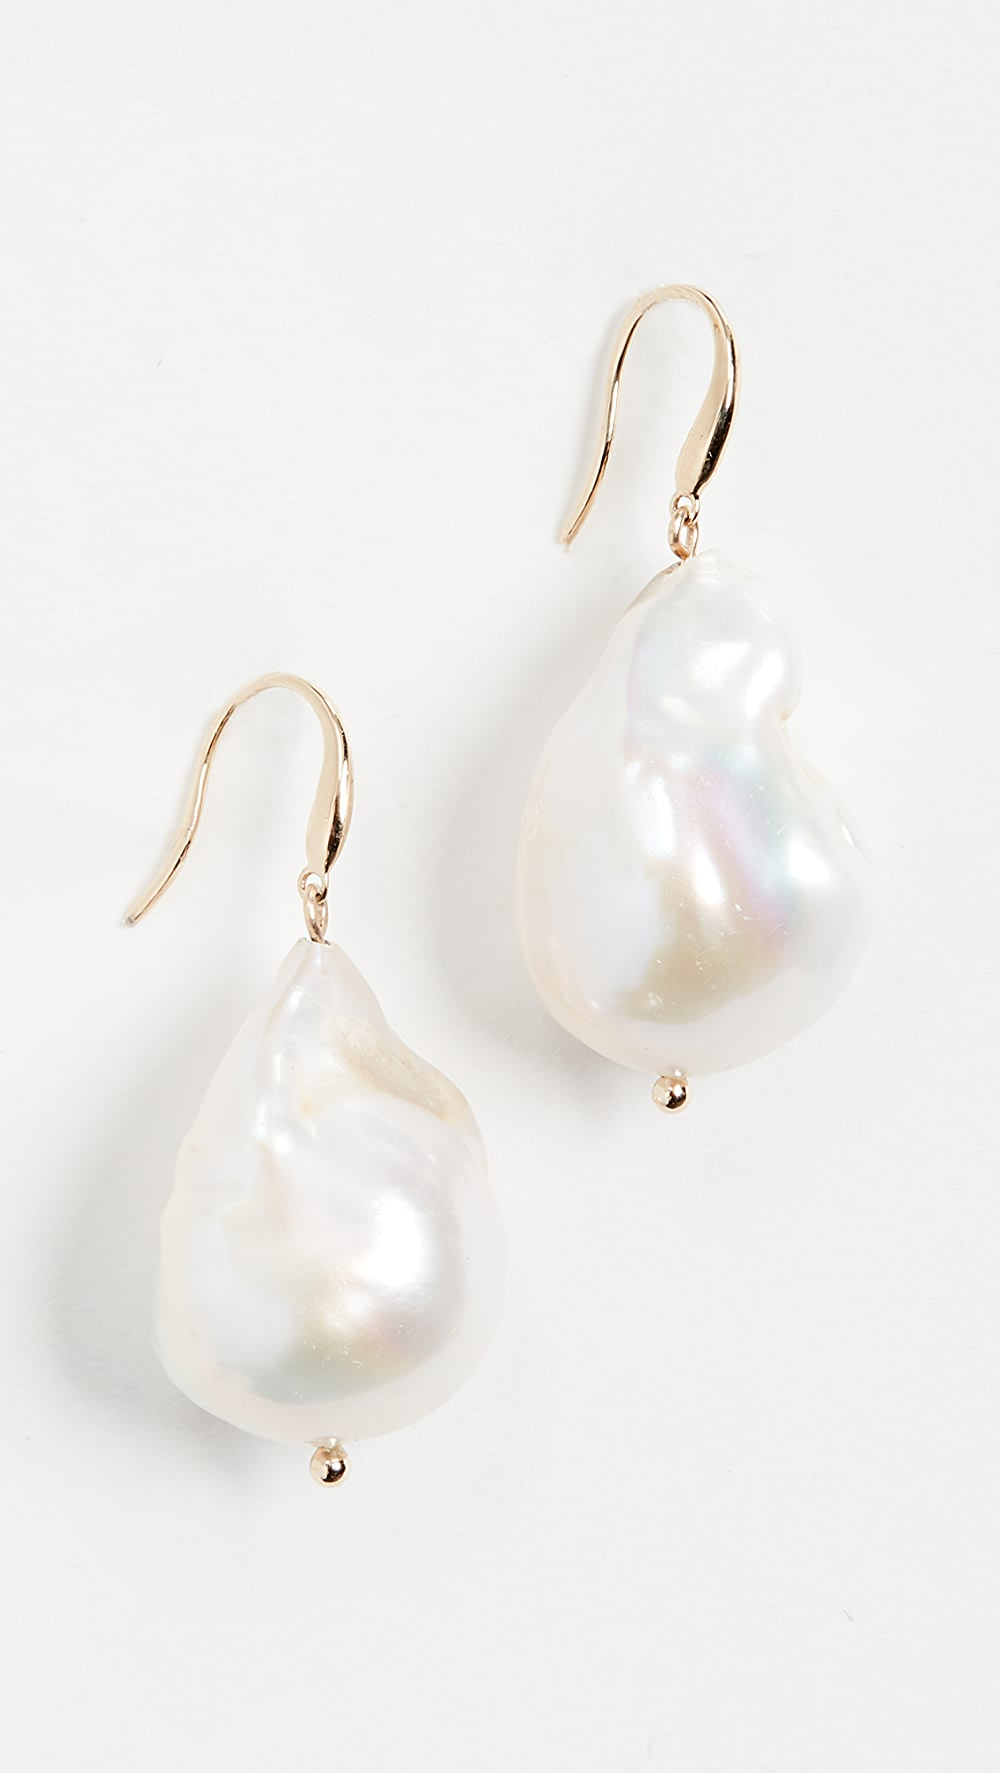 Aggressive Mateo - 14k Gold Baroque Pearl Drop Earrings Lustrous Surface